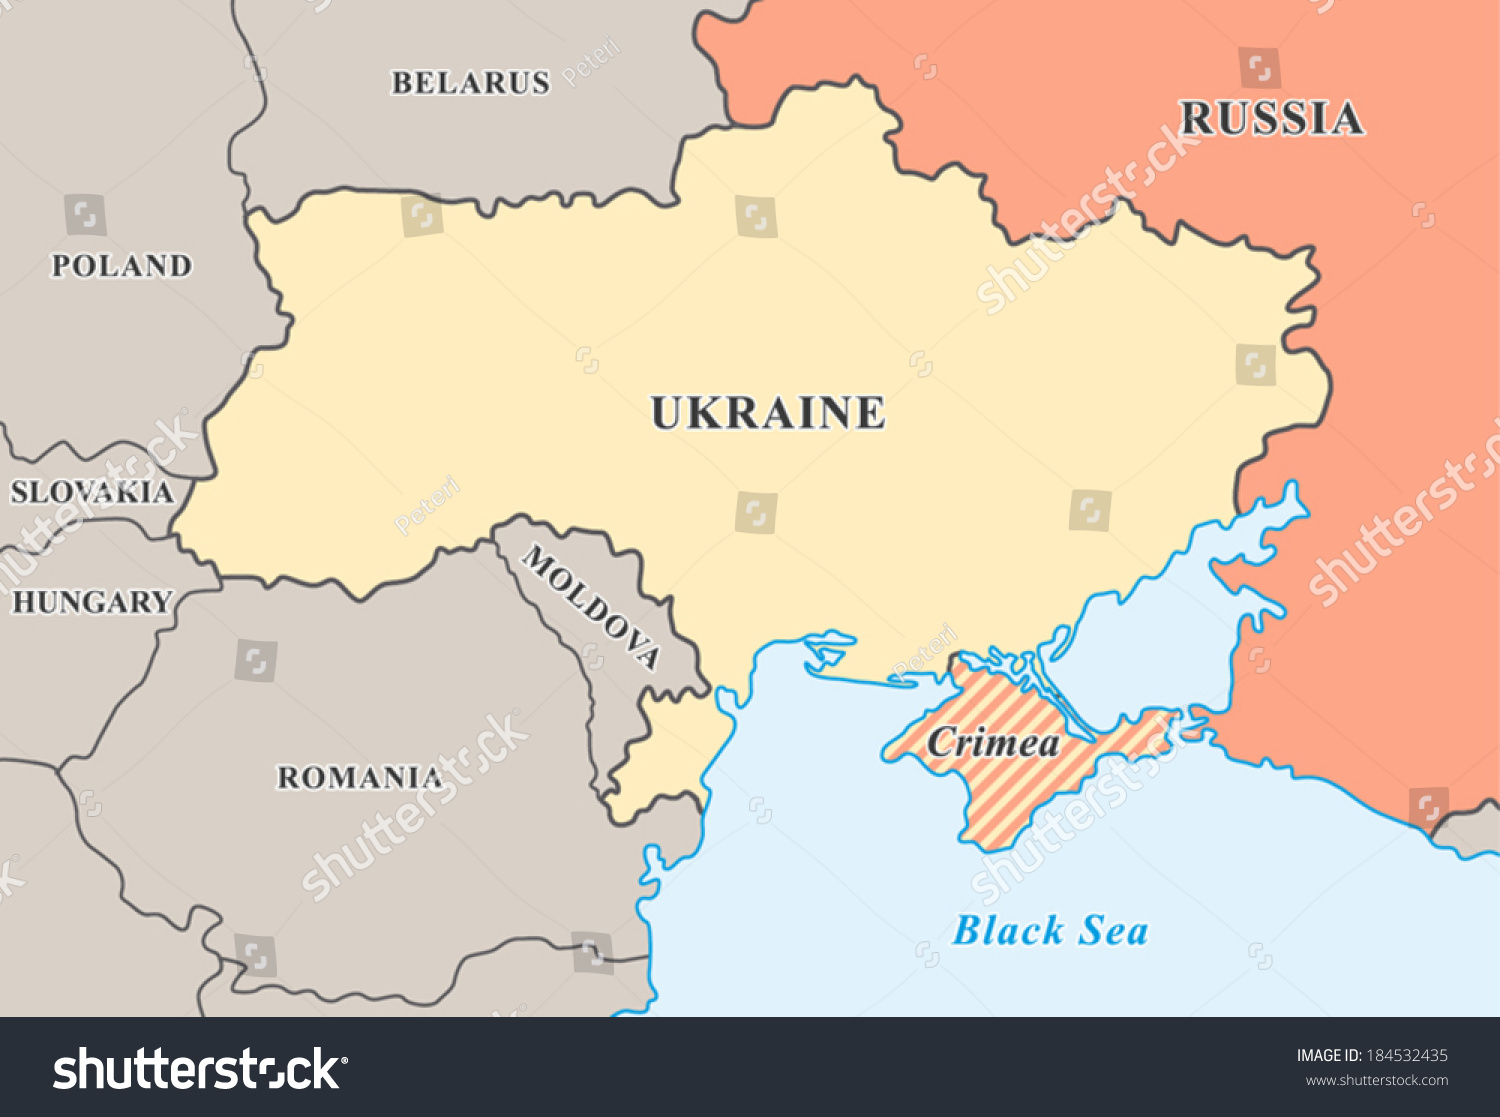 Russian Federation And Ukraine 7